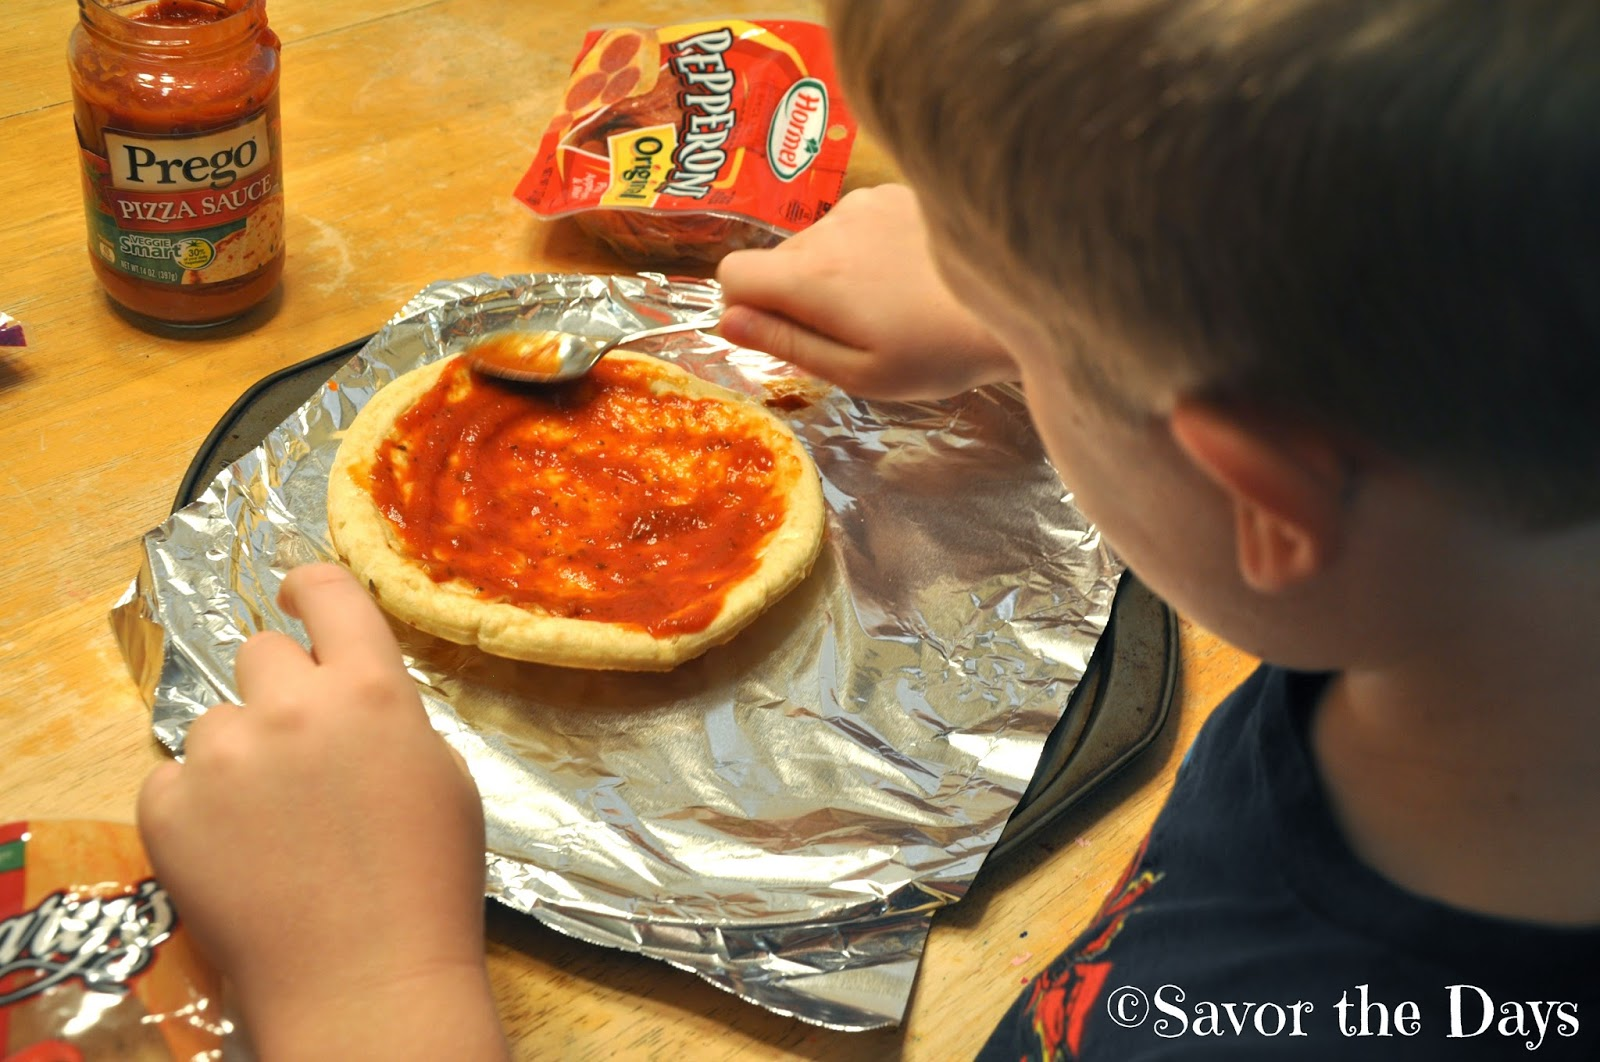 Boy making pizza